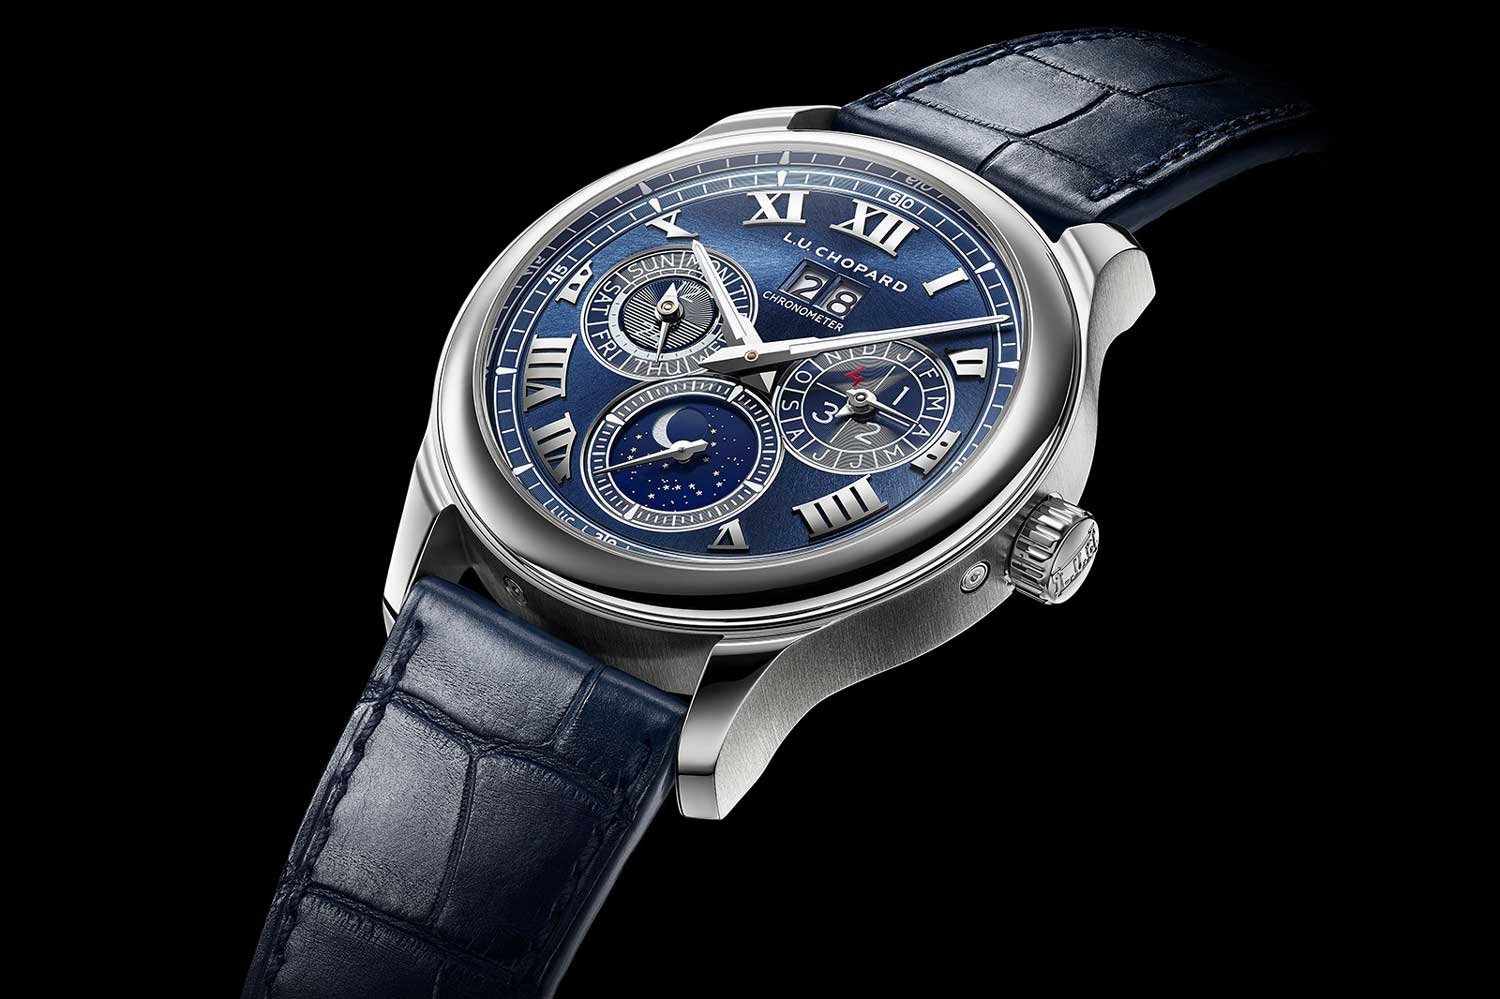 Chopard L.U.C Lunar One (2017). The platinum case with blue sunray brushed dial brings out the orbital moonphase and night sky even more.